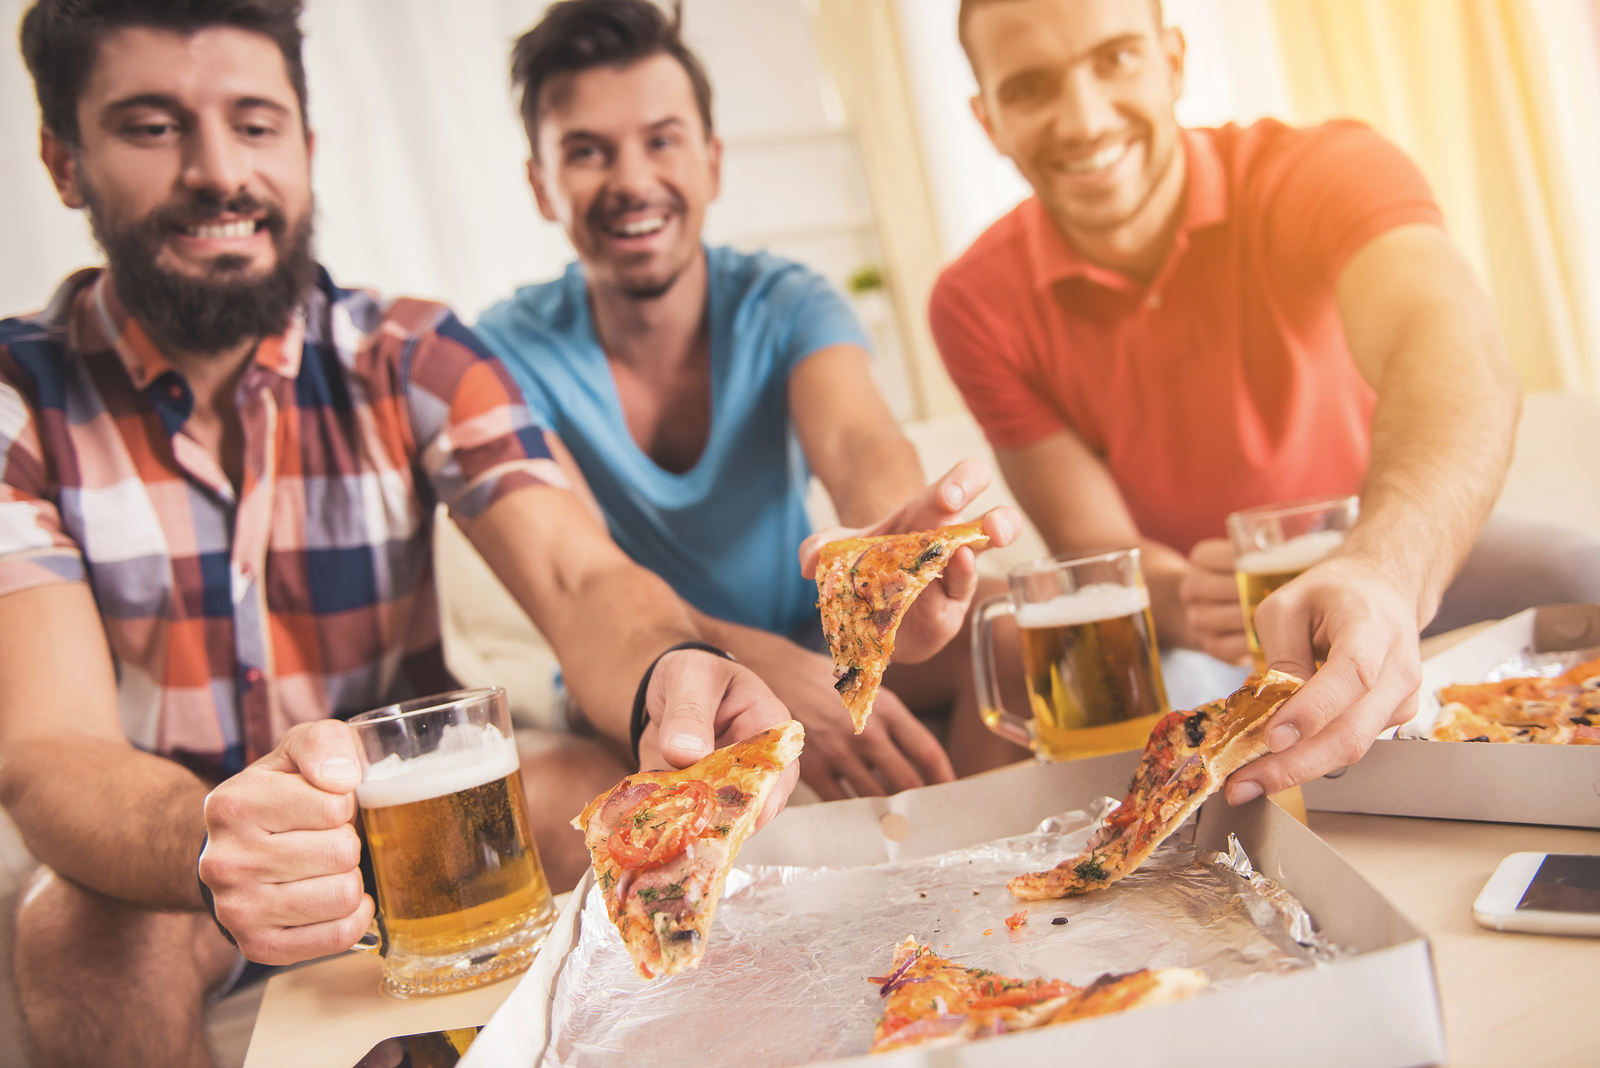 bigstock-Young-Smiling-Men-Drink-Beer-A-